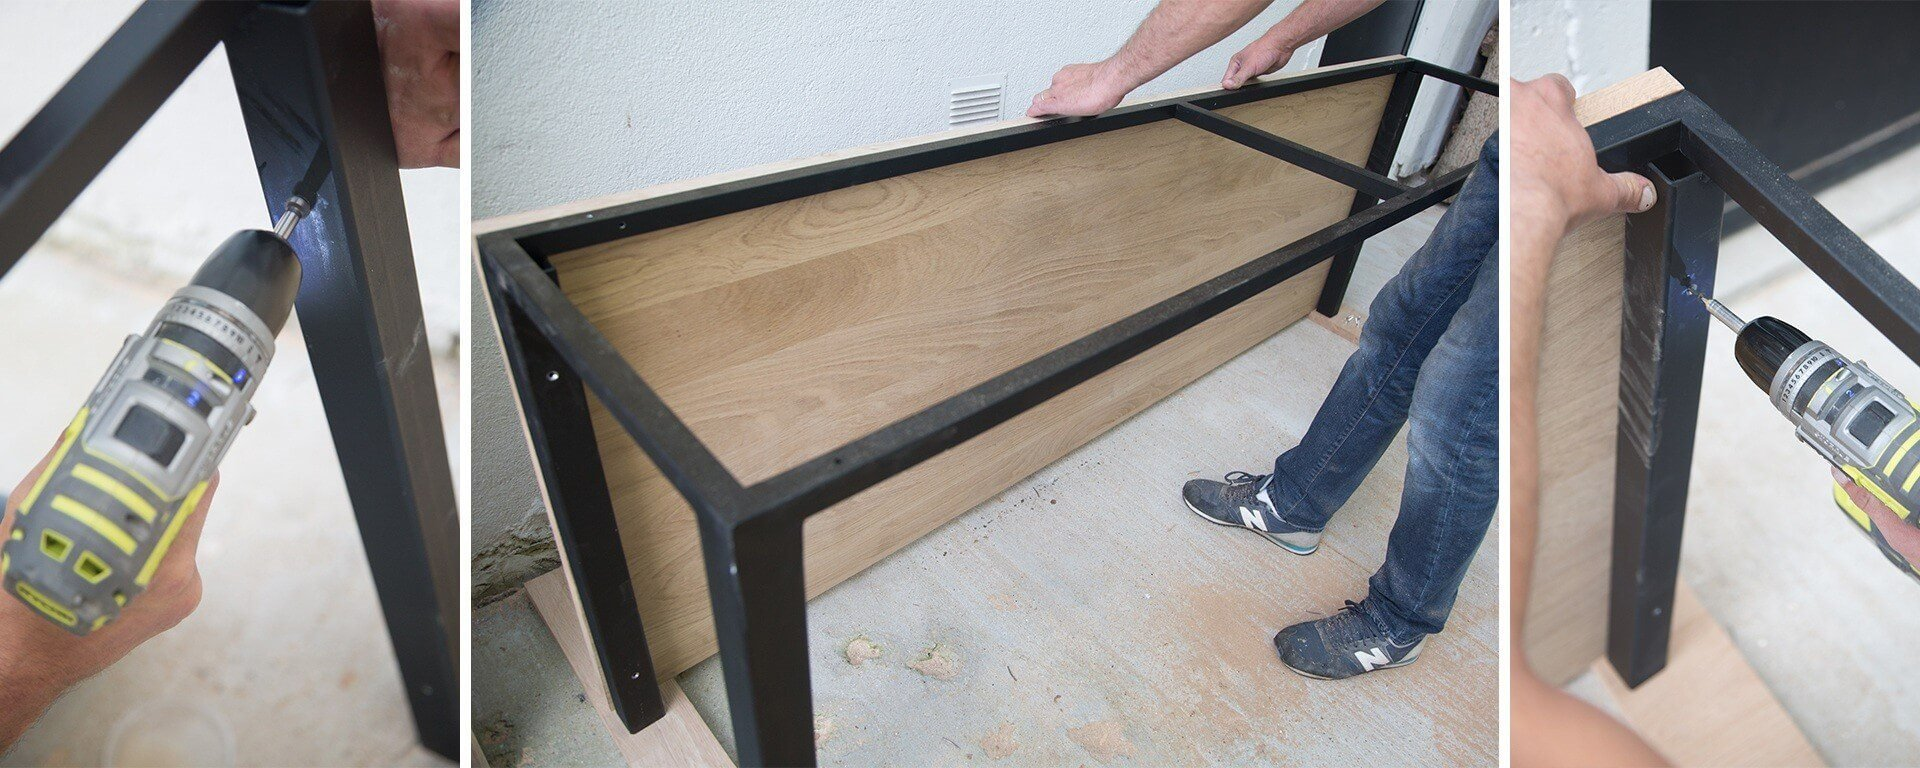 myryobi tutoriels de cr ation de meubles et objets diy. Black Bedroom Furniture Sets. Home Design Ideas